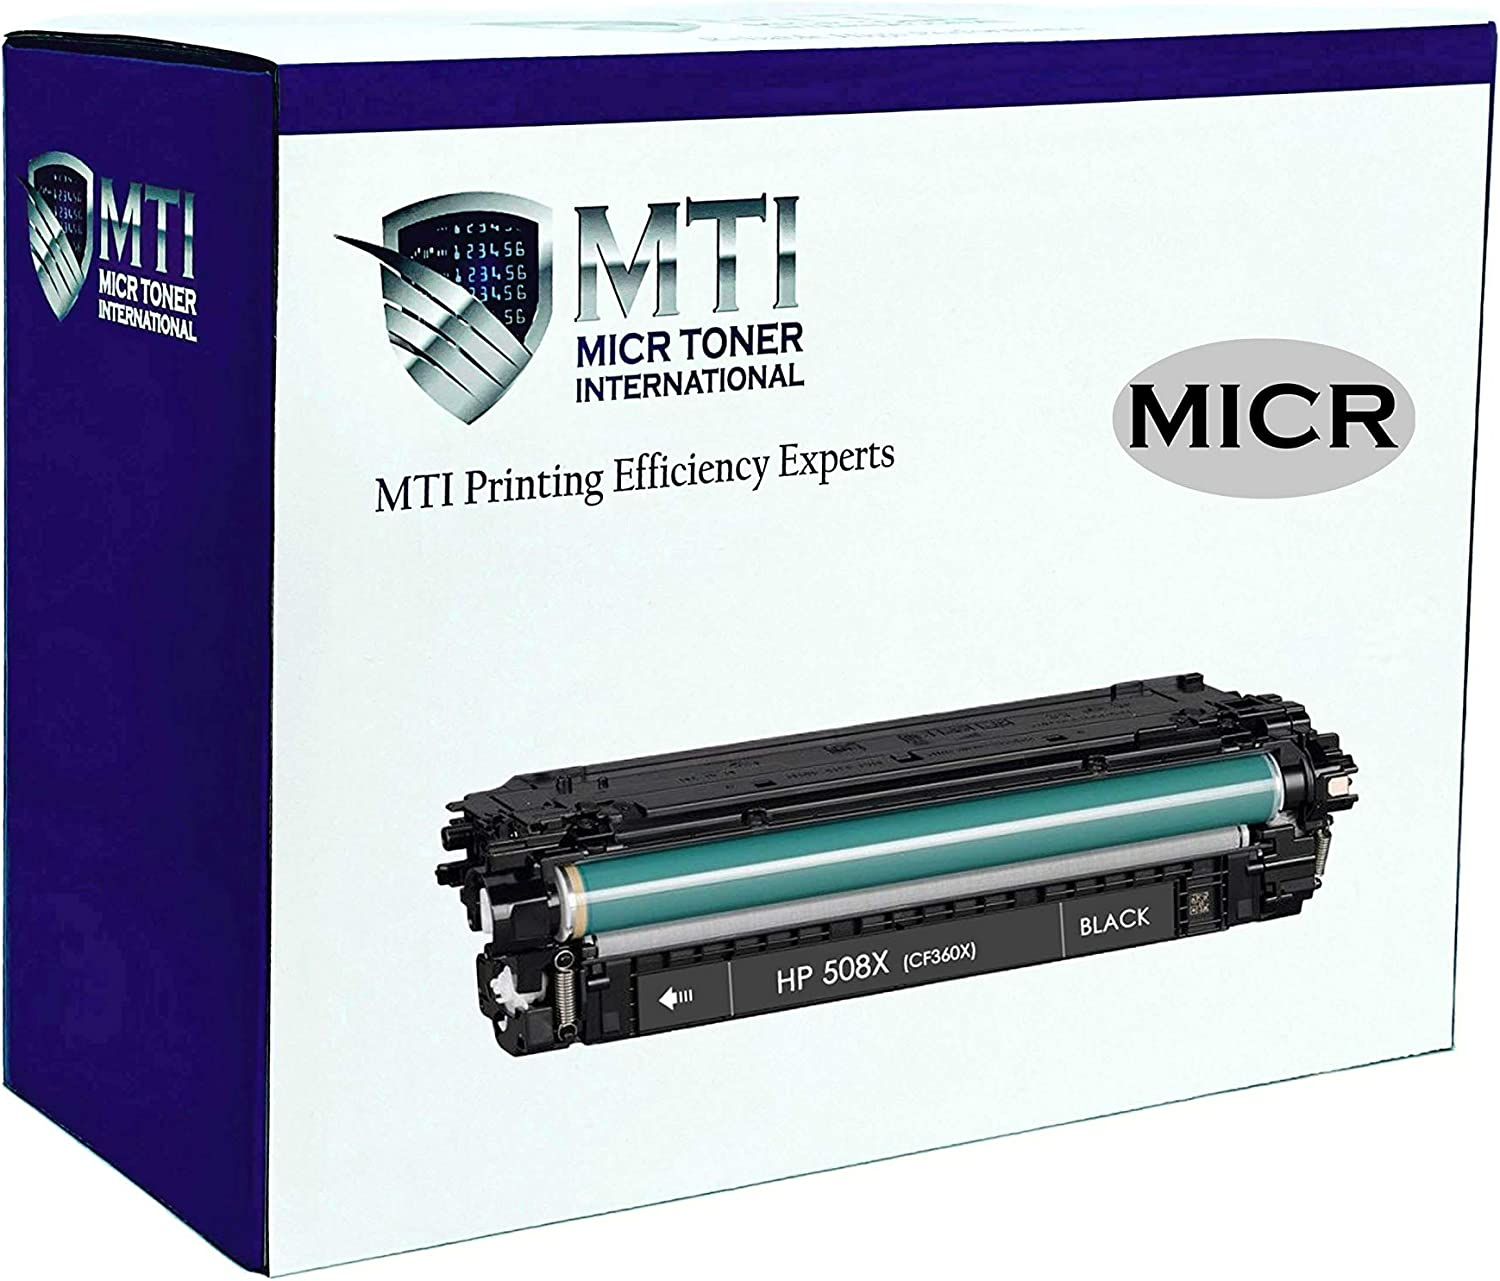 MICR Toner International Compatible High Yield Magnetic Ink Cartridge Replacement for HP 508X CF360X Laserjet M533 M552 M553 M577 E55040